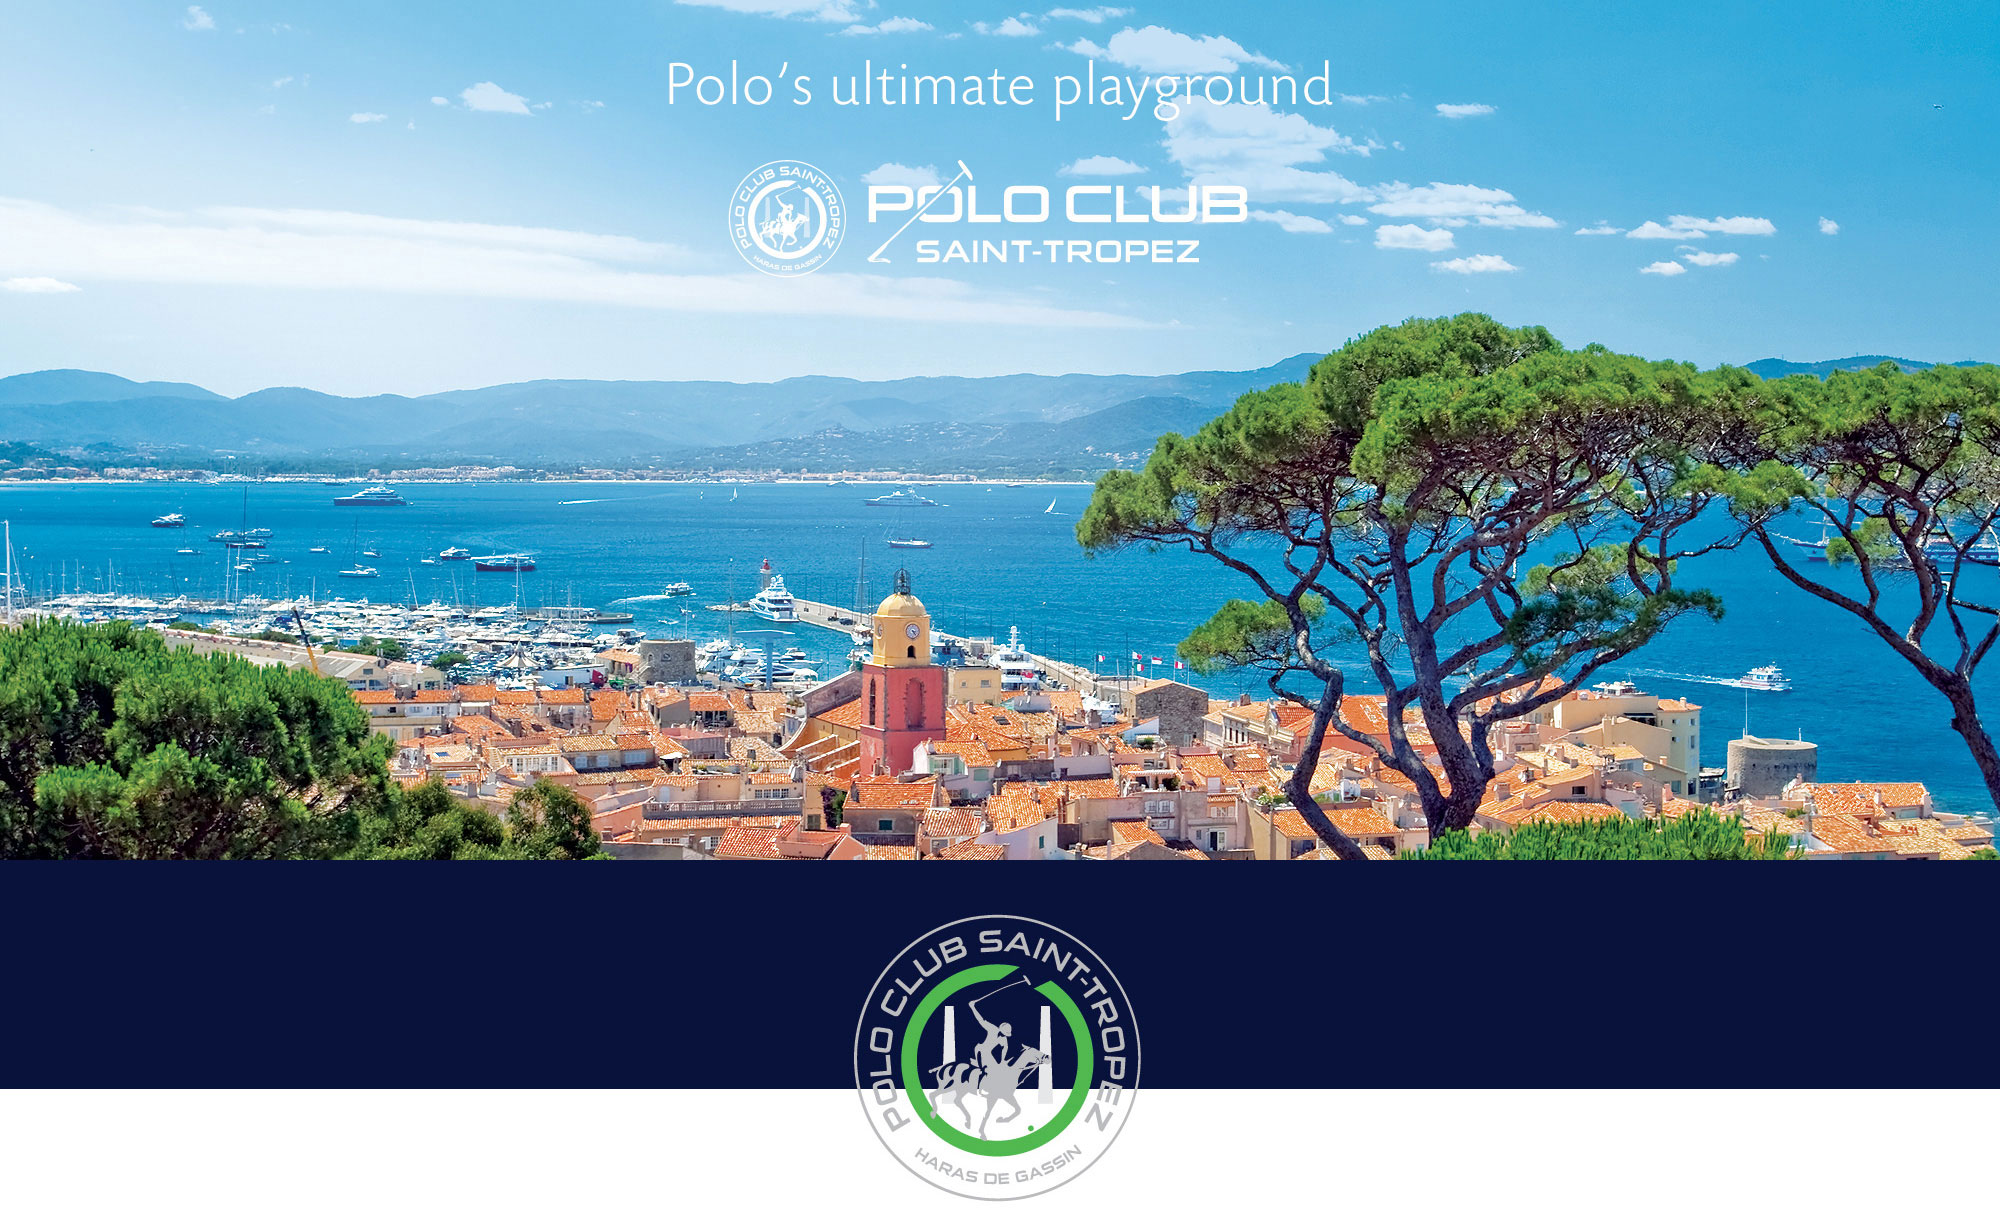 Polo Saint tropez